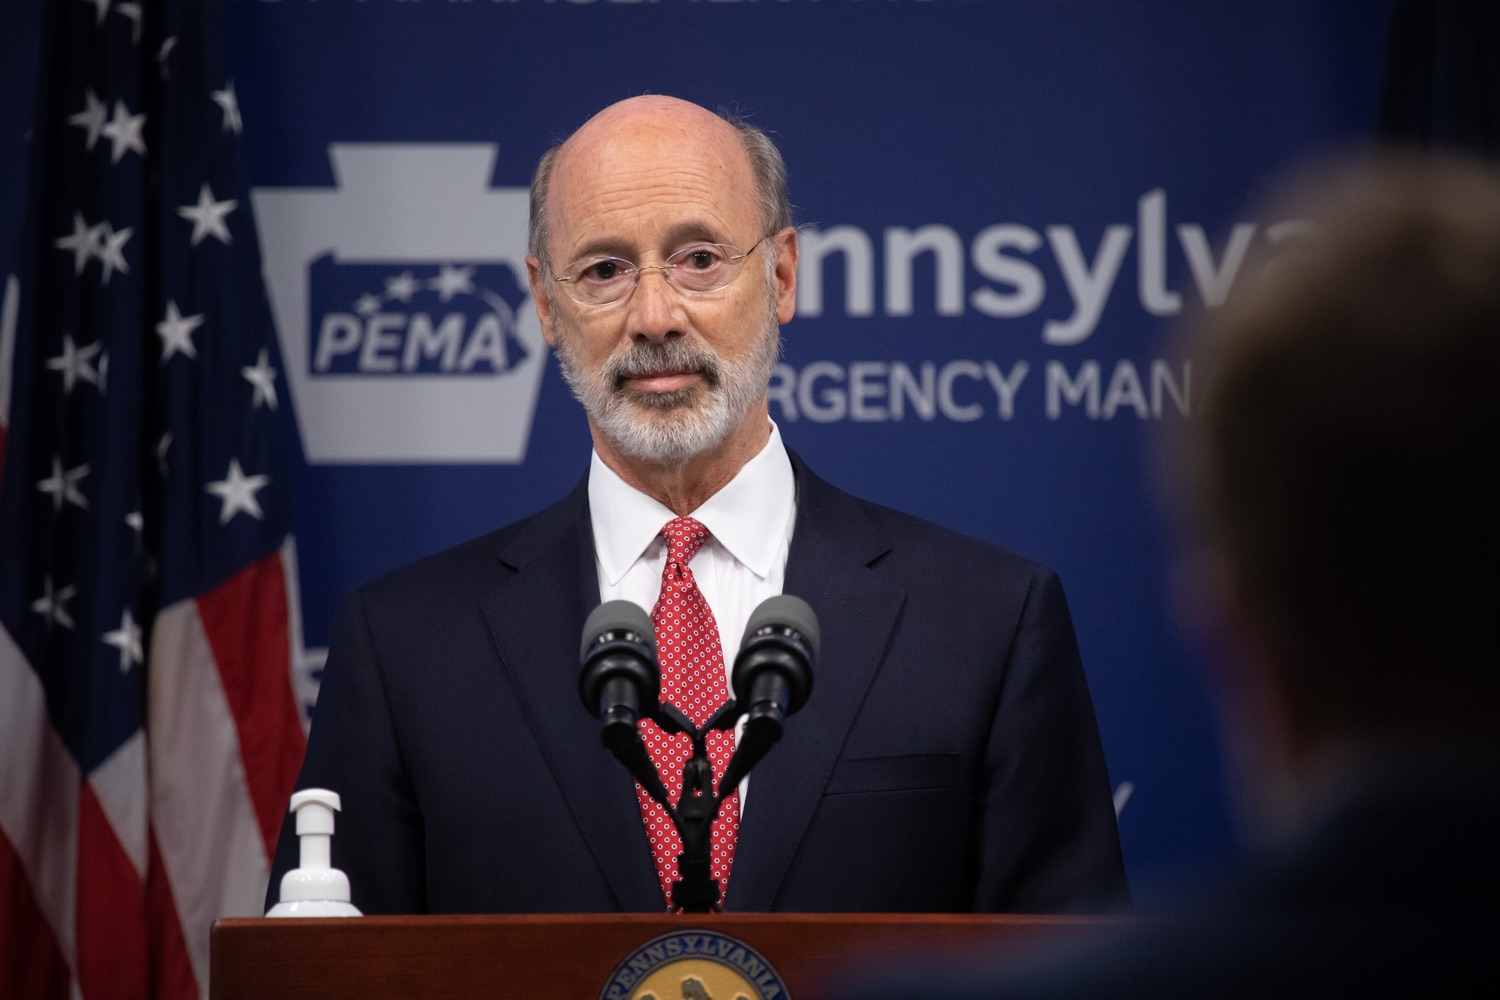 "<a href=""https://filesource.wostreaming.net/commonwealthofpa/photo/18091_gov_covid_update_dz_04.jpg"" target=""_blank"">⇣ Download Photo<br></a>Pennsylvania Governor Tom Wolf answering questions from the press.  As states across the country begin to reopen and nearly half are seeing COVID-19 cases rise, Governor Tom Wolf announced Friday that Pennsylvania is not one of them. ...Today at a daily COVID briefing with Health Secretary Dr. Rachel Levine, he noted another milestone: The Centers for Disease Control and Prevention proprietary data for states indicates that we are one of just three states that has had a downward trajectory of COVID- 19 cases for more than 42 days. The other two states are Montana and Hawaii.  JUNE 17, 2020 - HARRISBURG, PA."